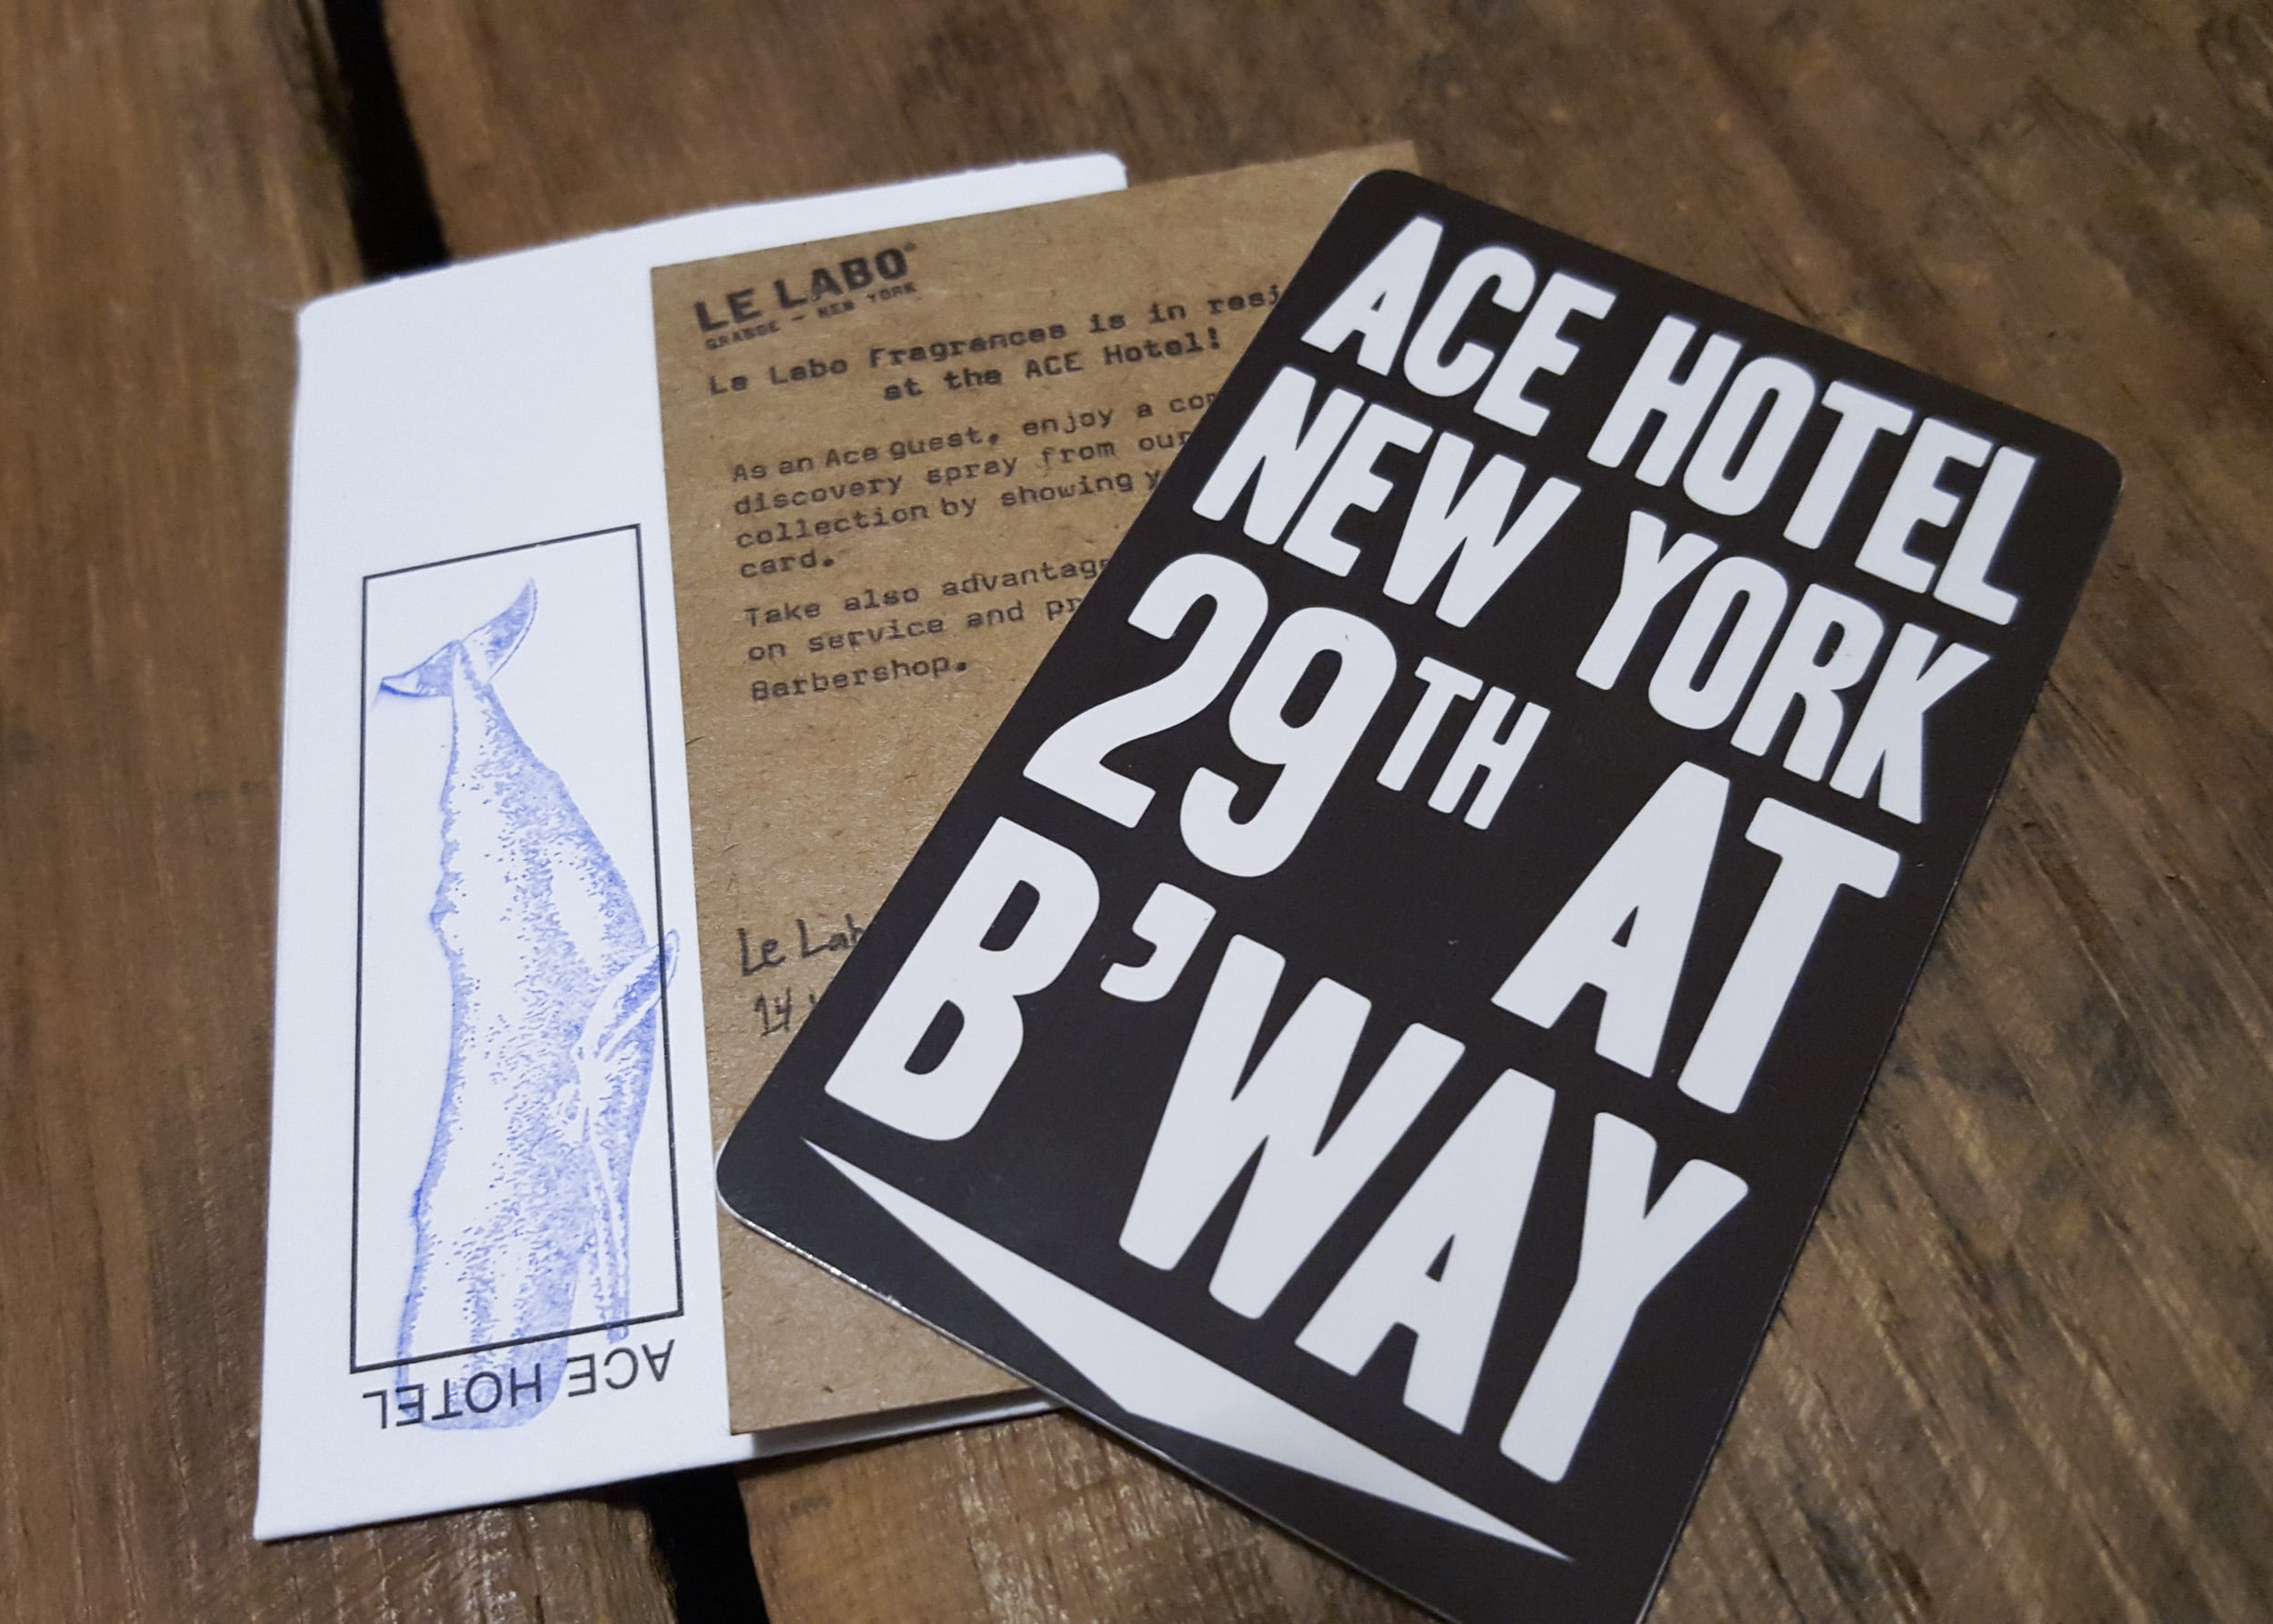 Ace Hotel in NYC